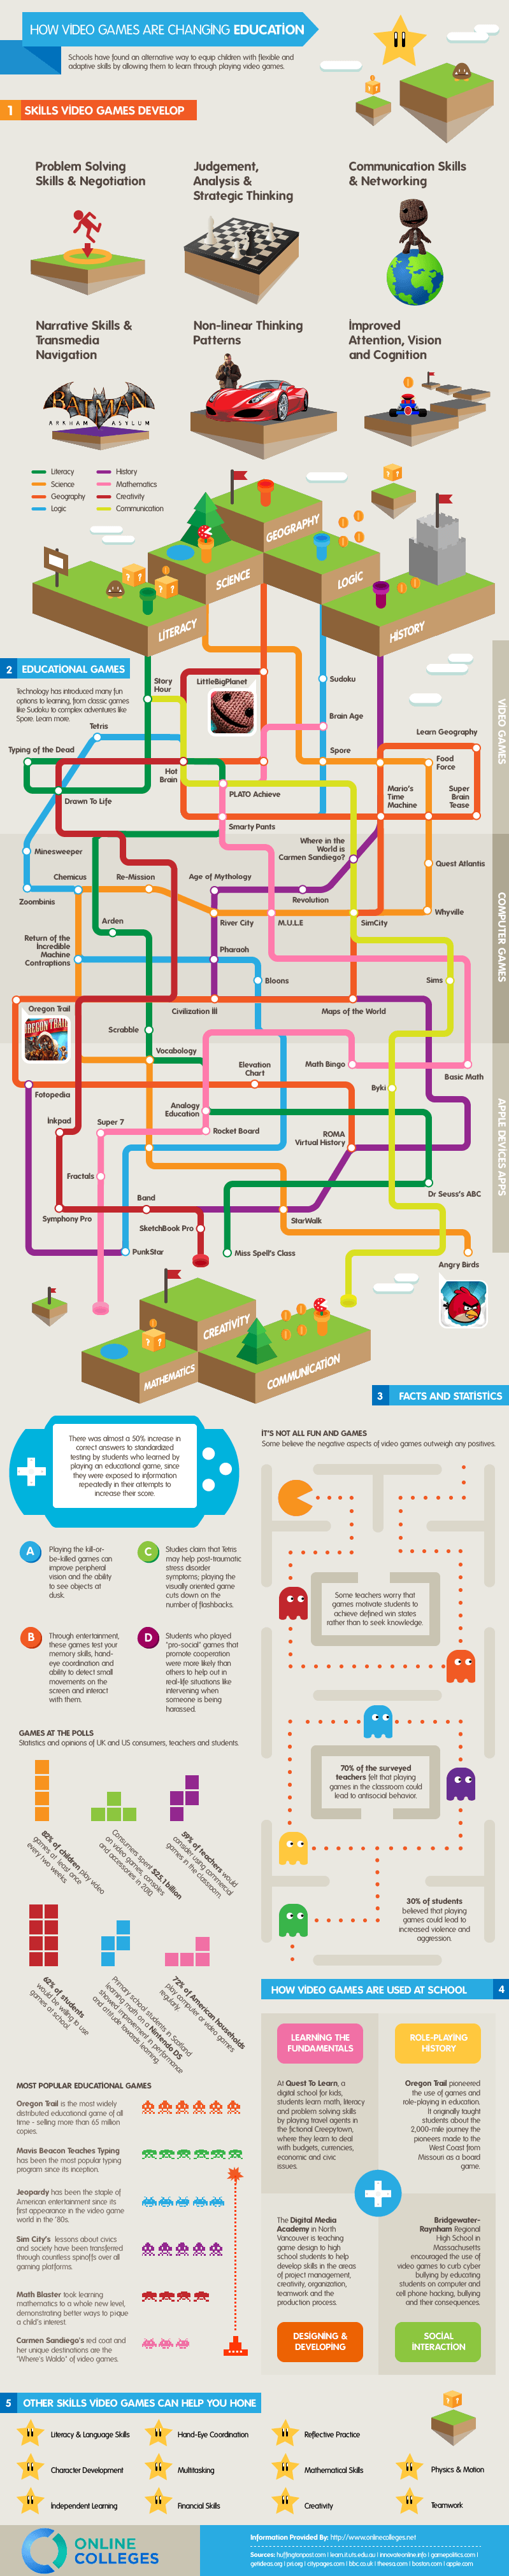 Video Games Transforming Education Infographic